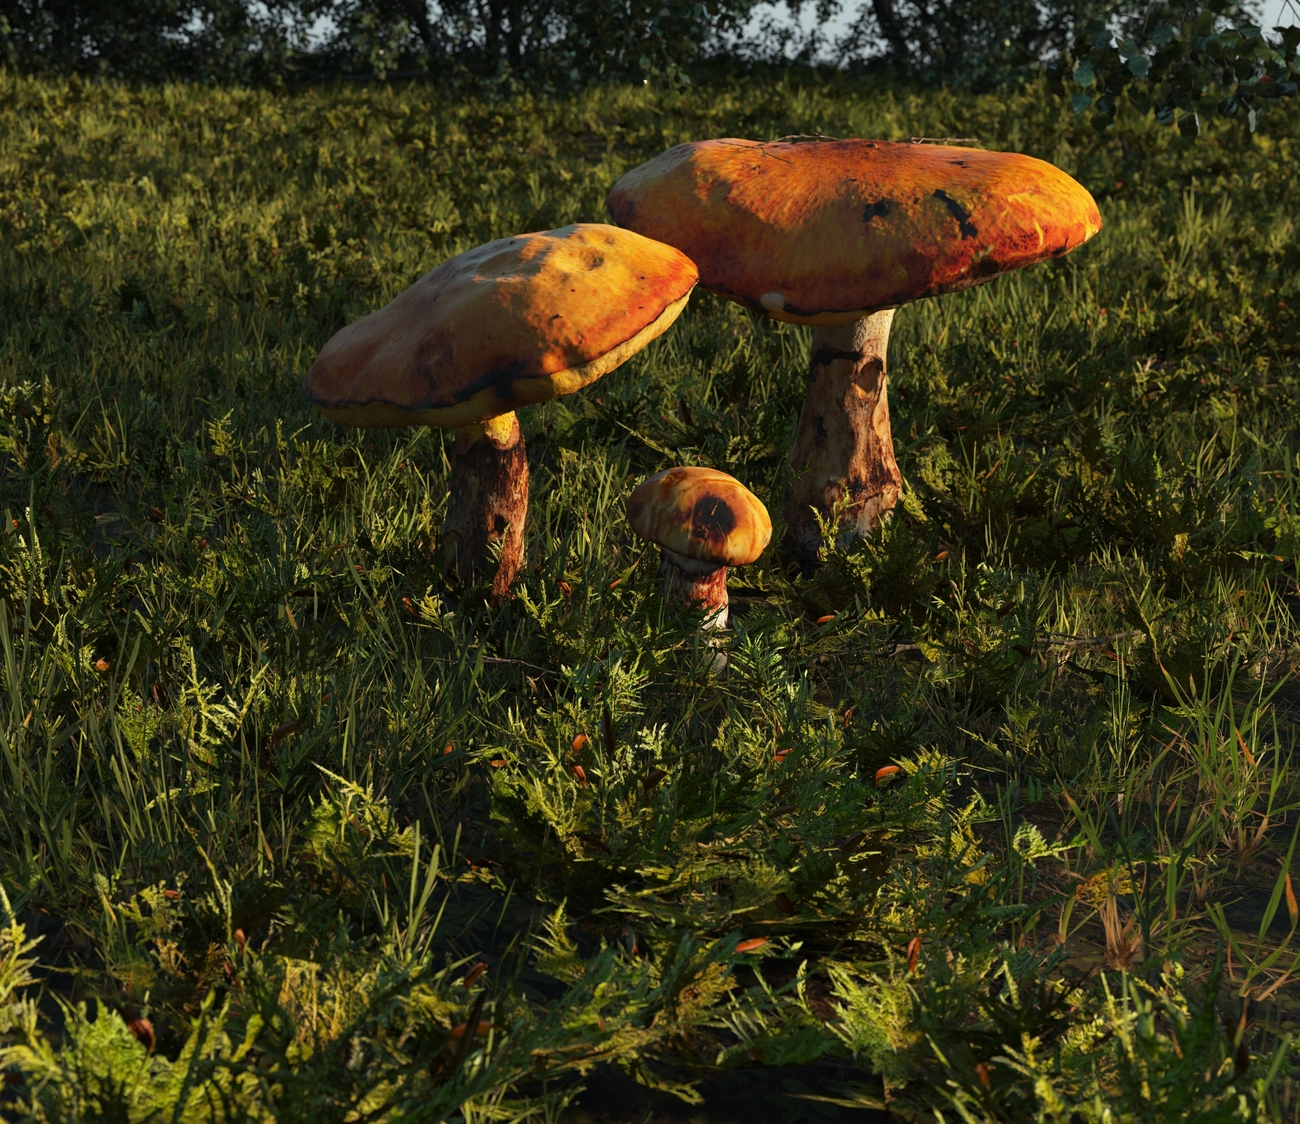 Bolete mushrooms by iborg64